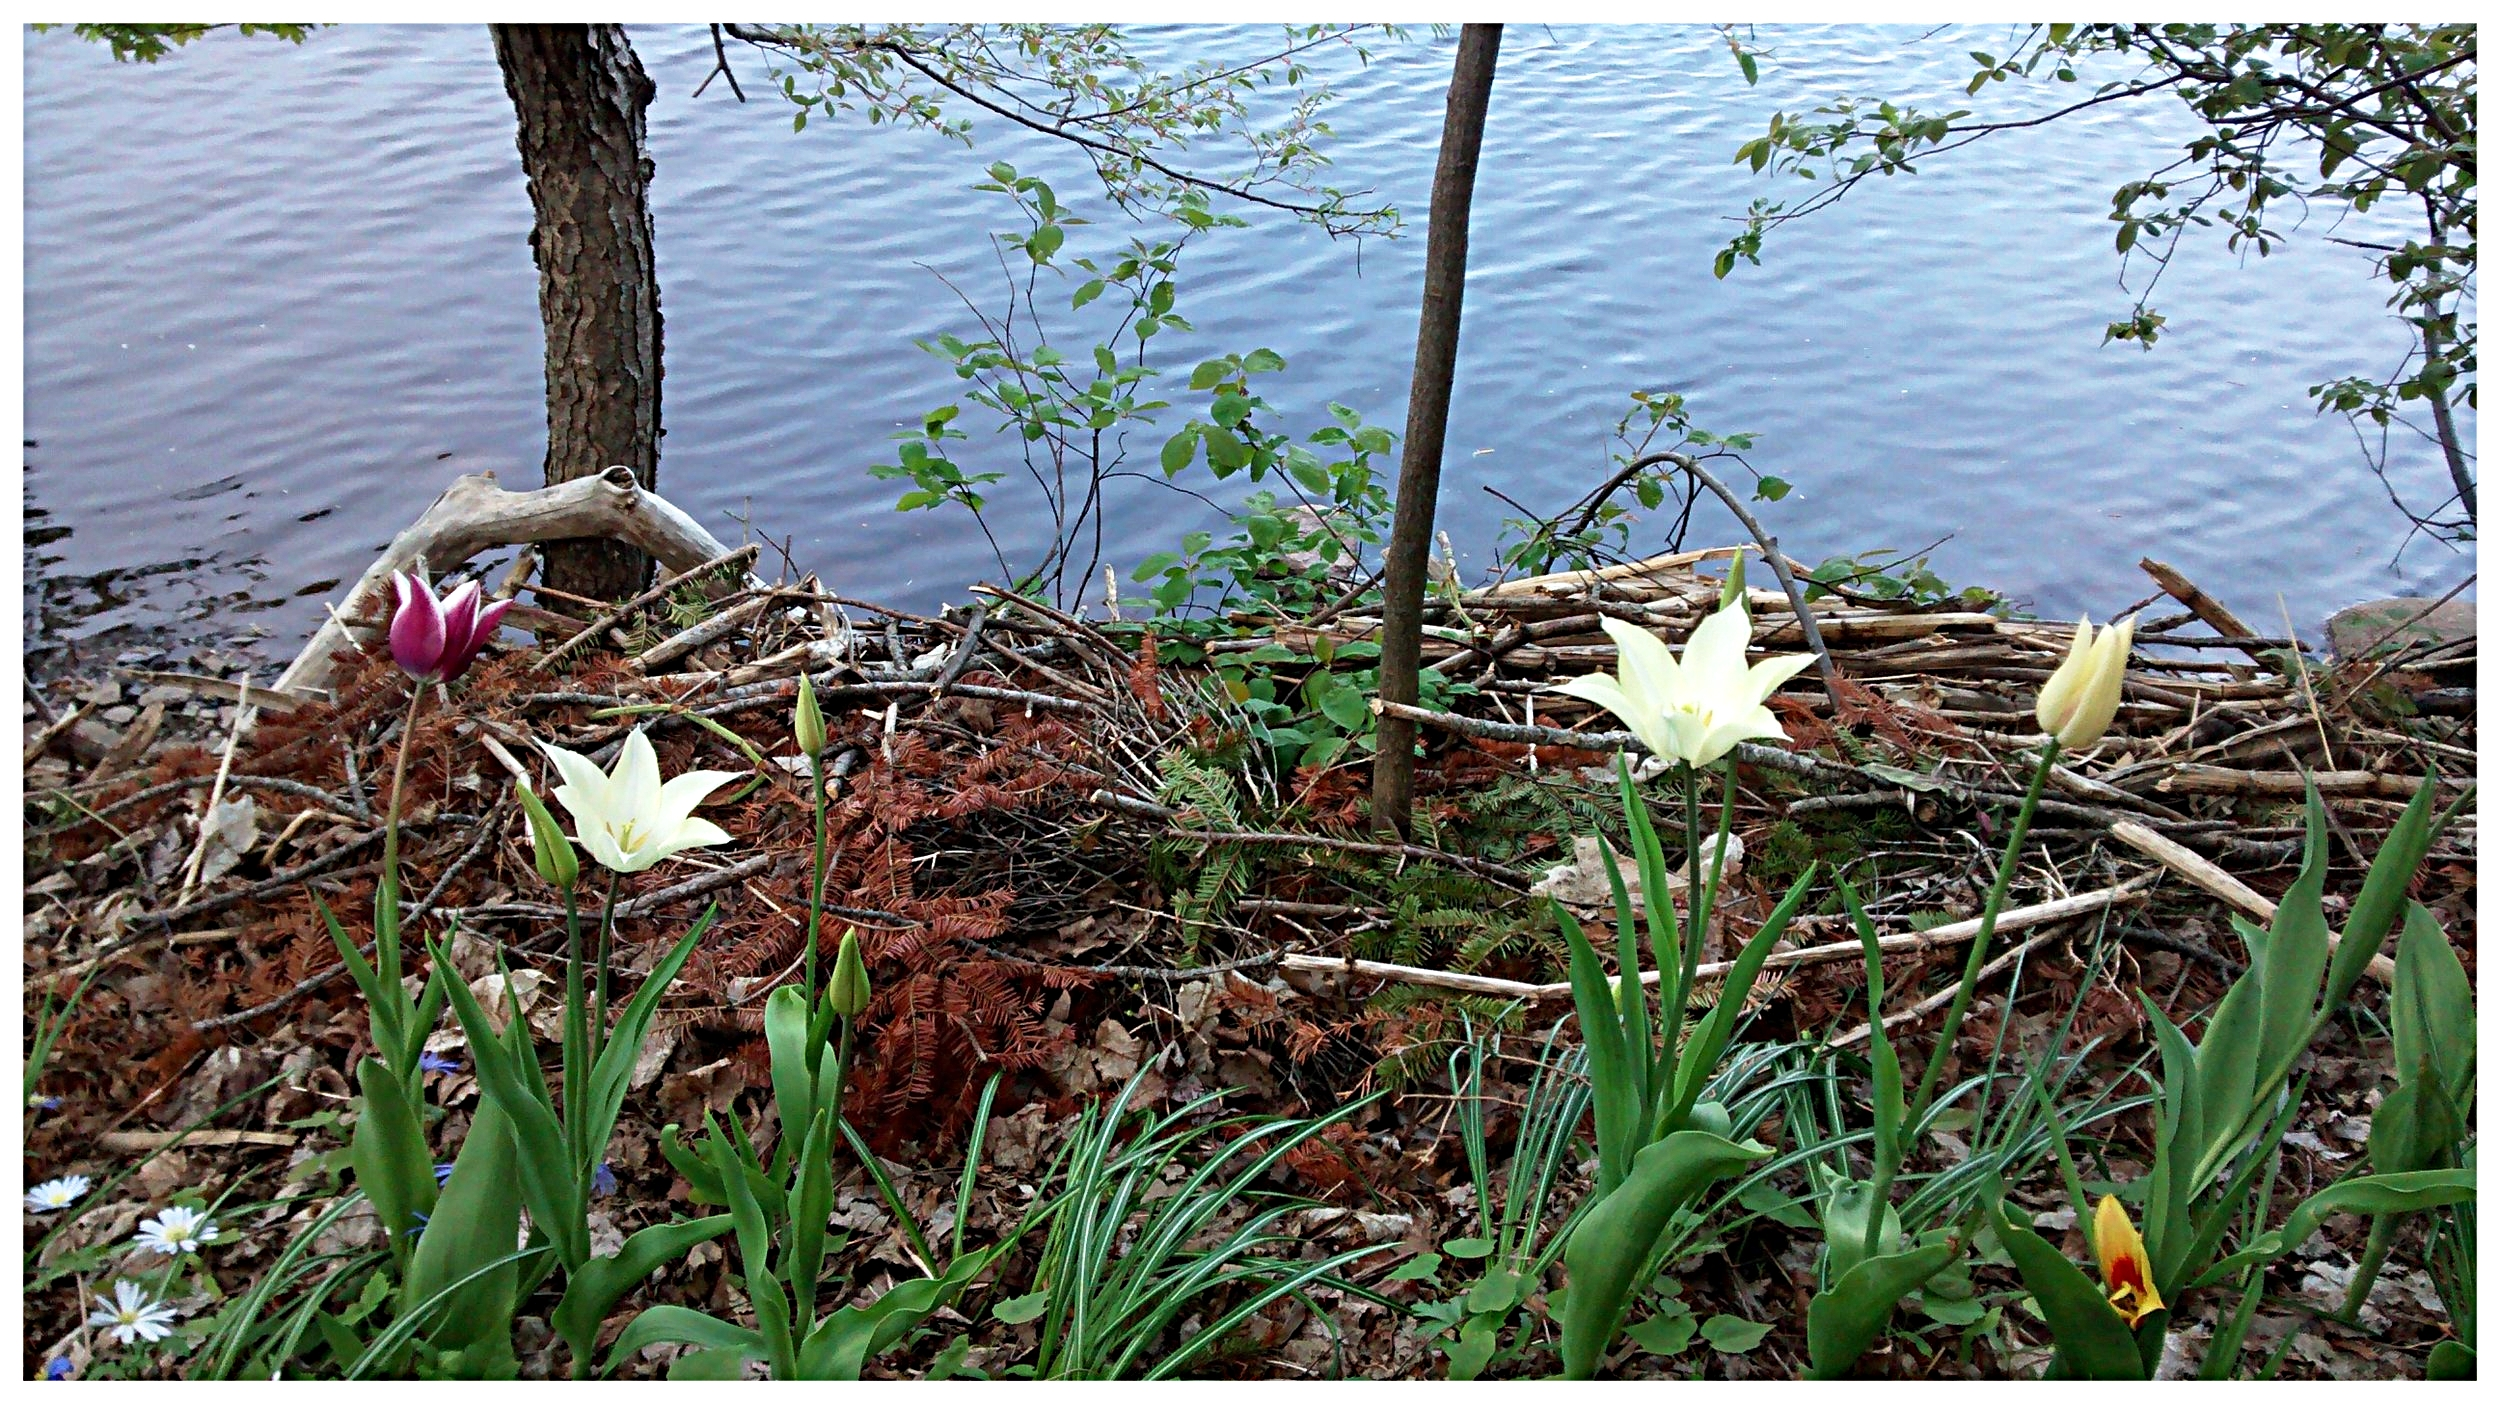 My spring  living shoreline  garden on the  LaHave River . We're looking forward to even more blooms this year ( Bridgewater , Nova Scotia).